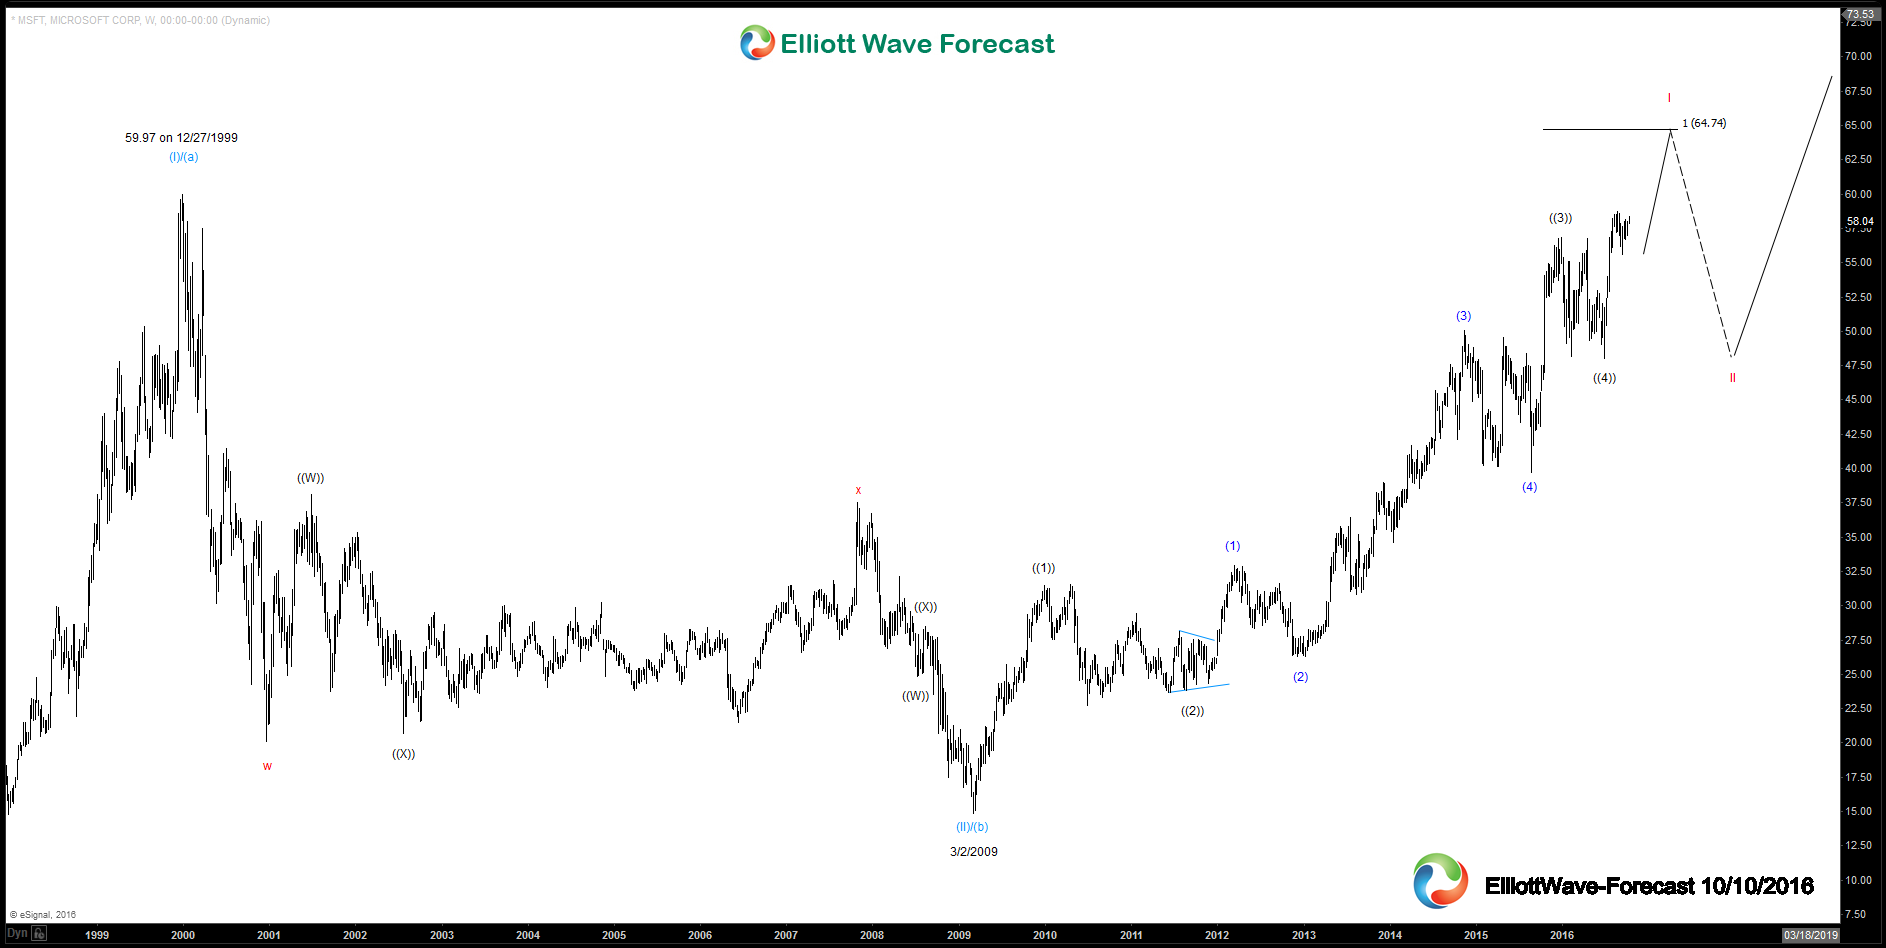 Microsoft Weekly and Daily Elliott Wave Analysis $MSFT